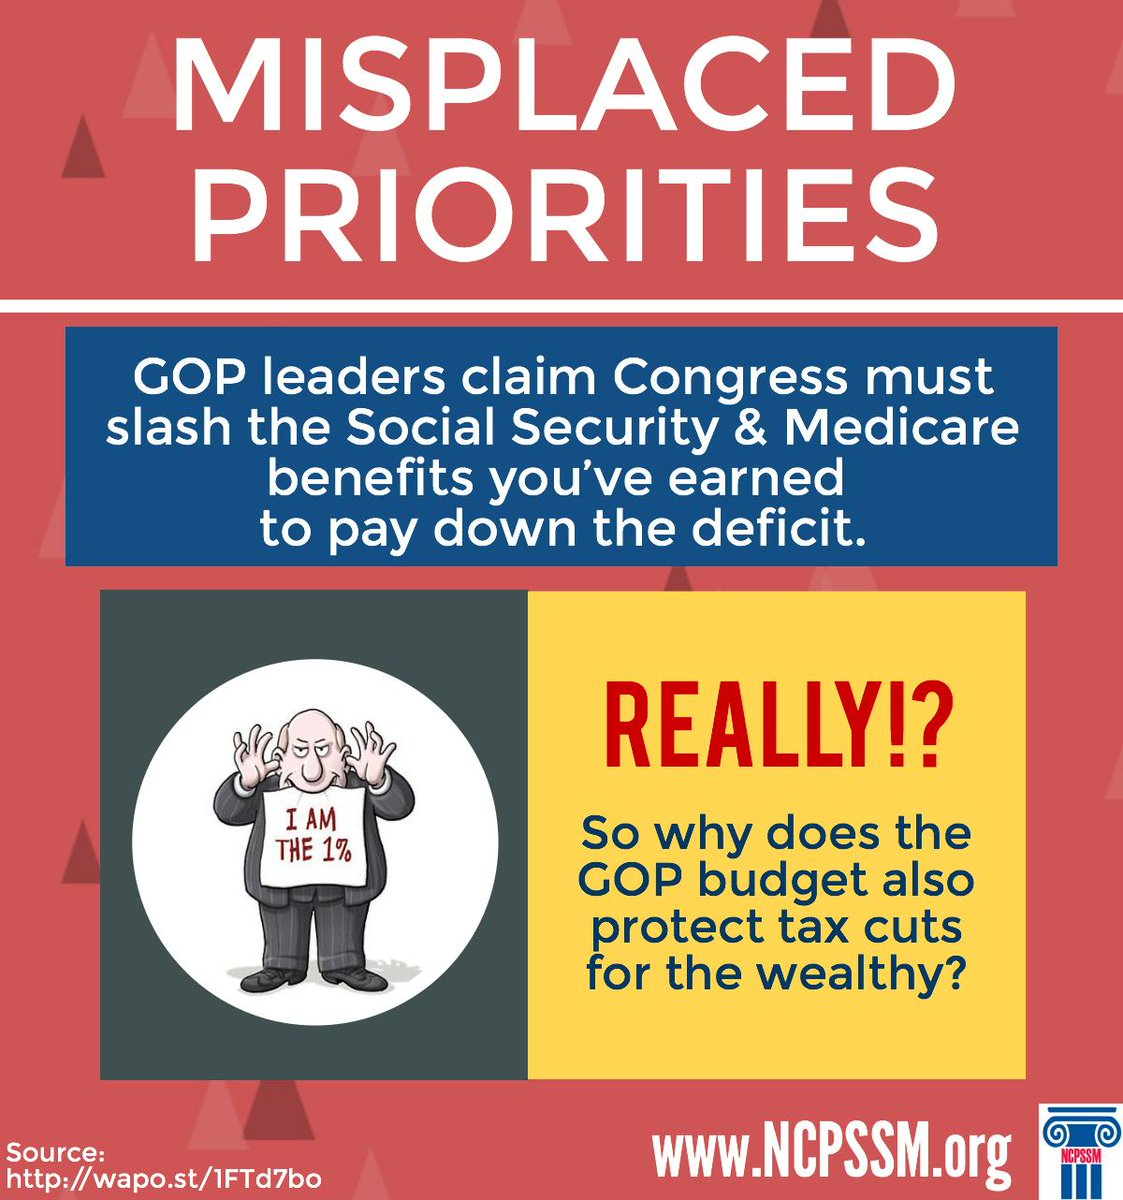 GOP leaders claim Congress must slash #SocialSecurity/#Medicare benefits you've earned to pay down deficit. Really?! http://t.co/NqBEO8c4Uc